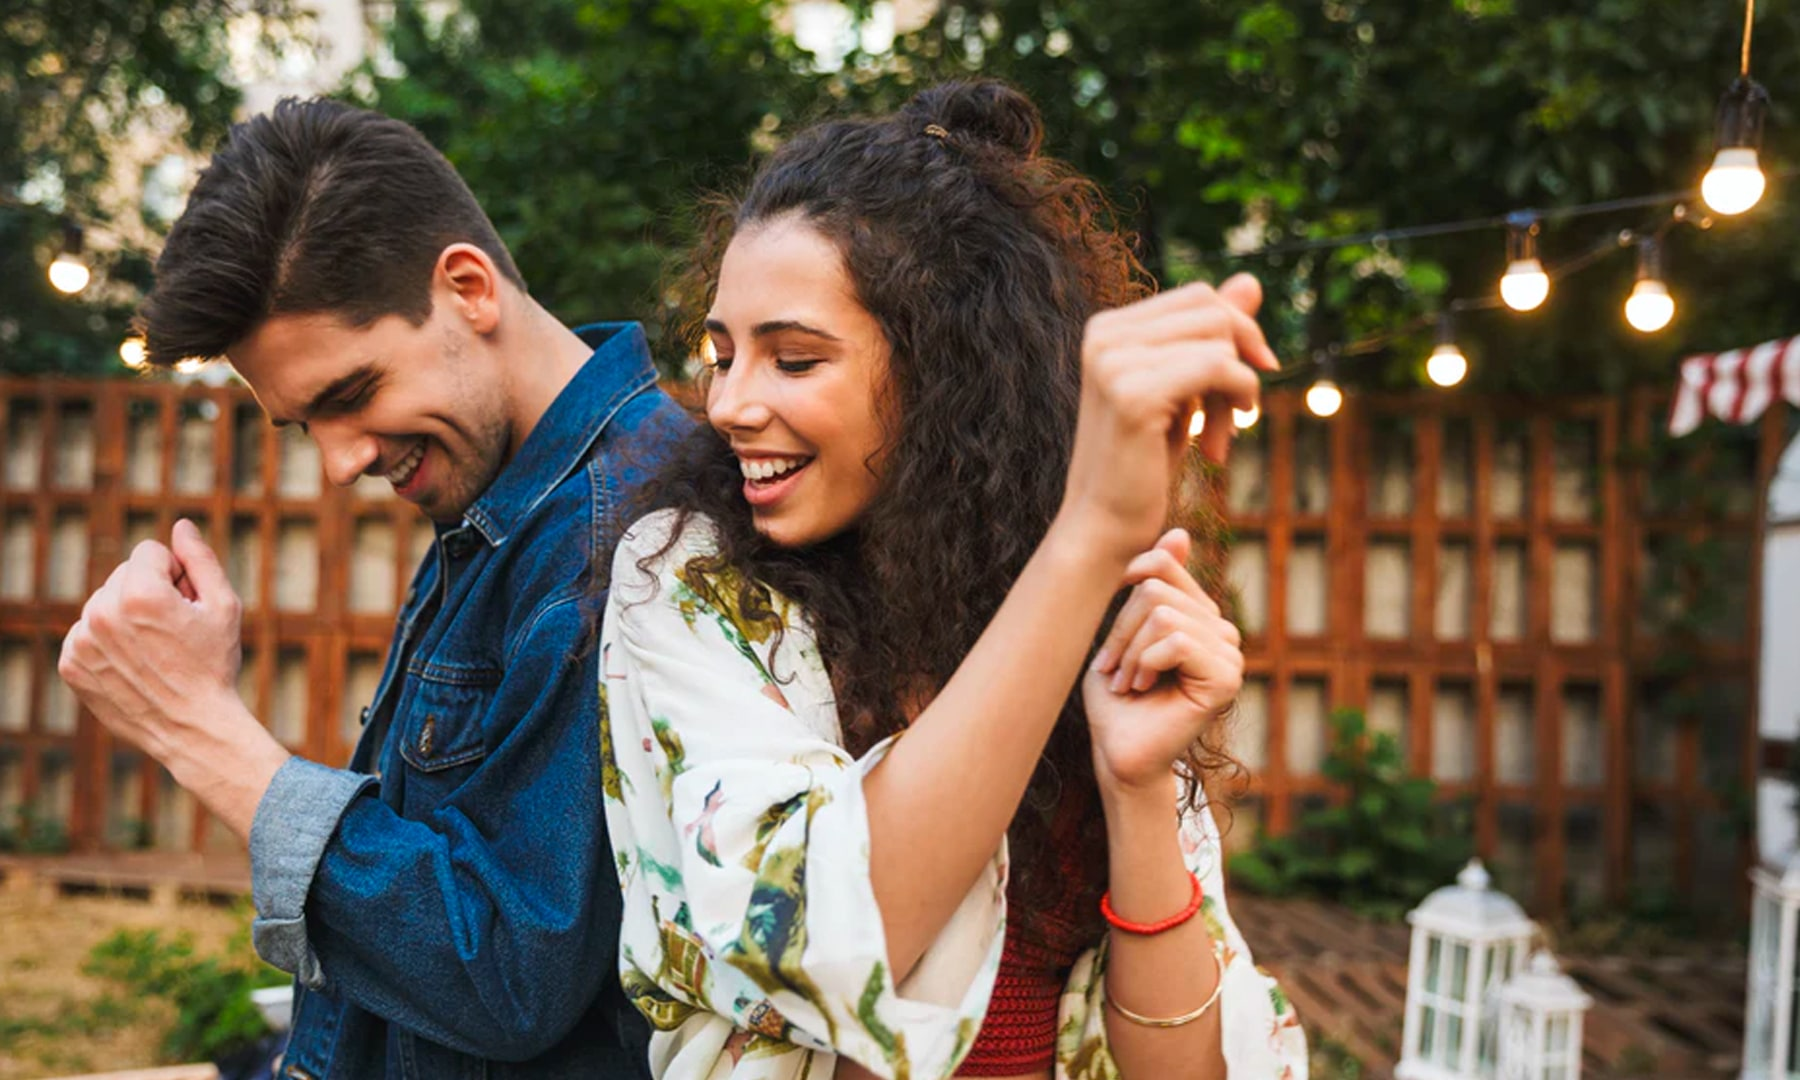 bloomthis-valentines-date-ideas-couple-dancing